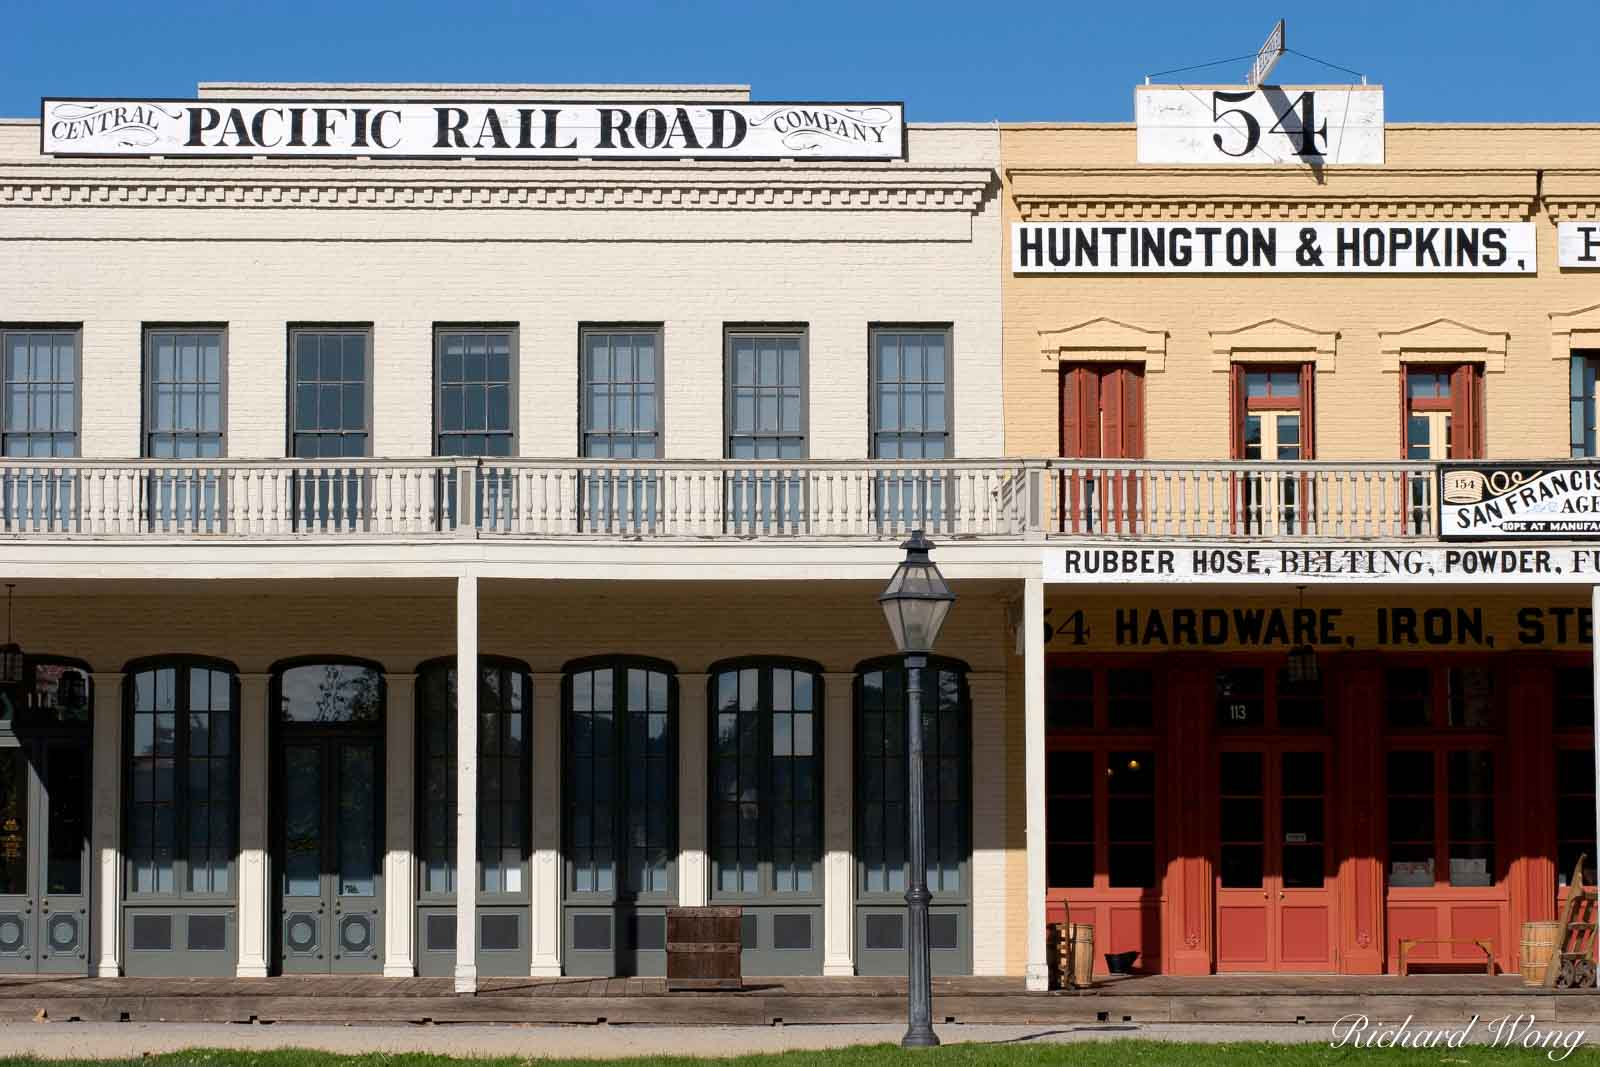 Central Pacific Railroad Company, Huntington & Hopkins Hardware Store, Old Town Sacramento, California, photo, photo